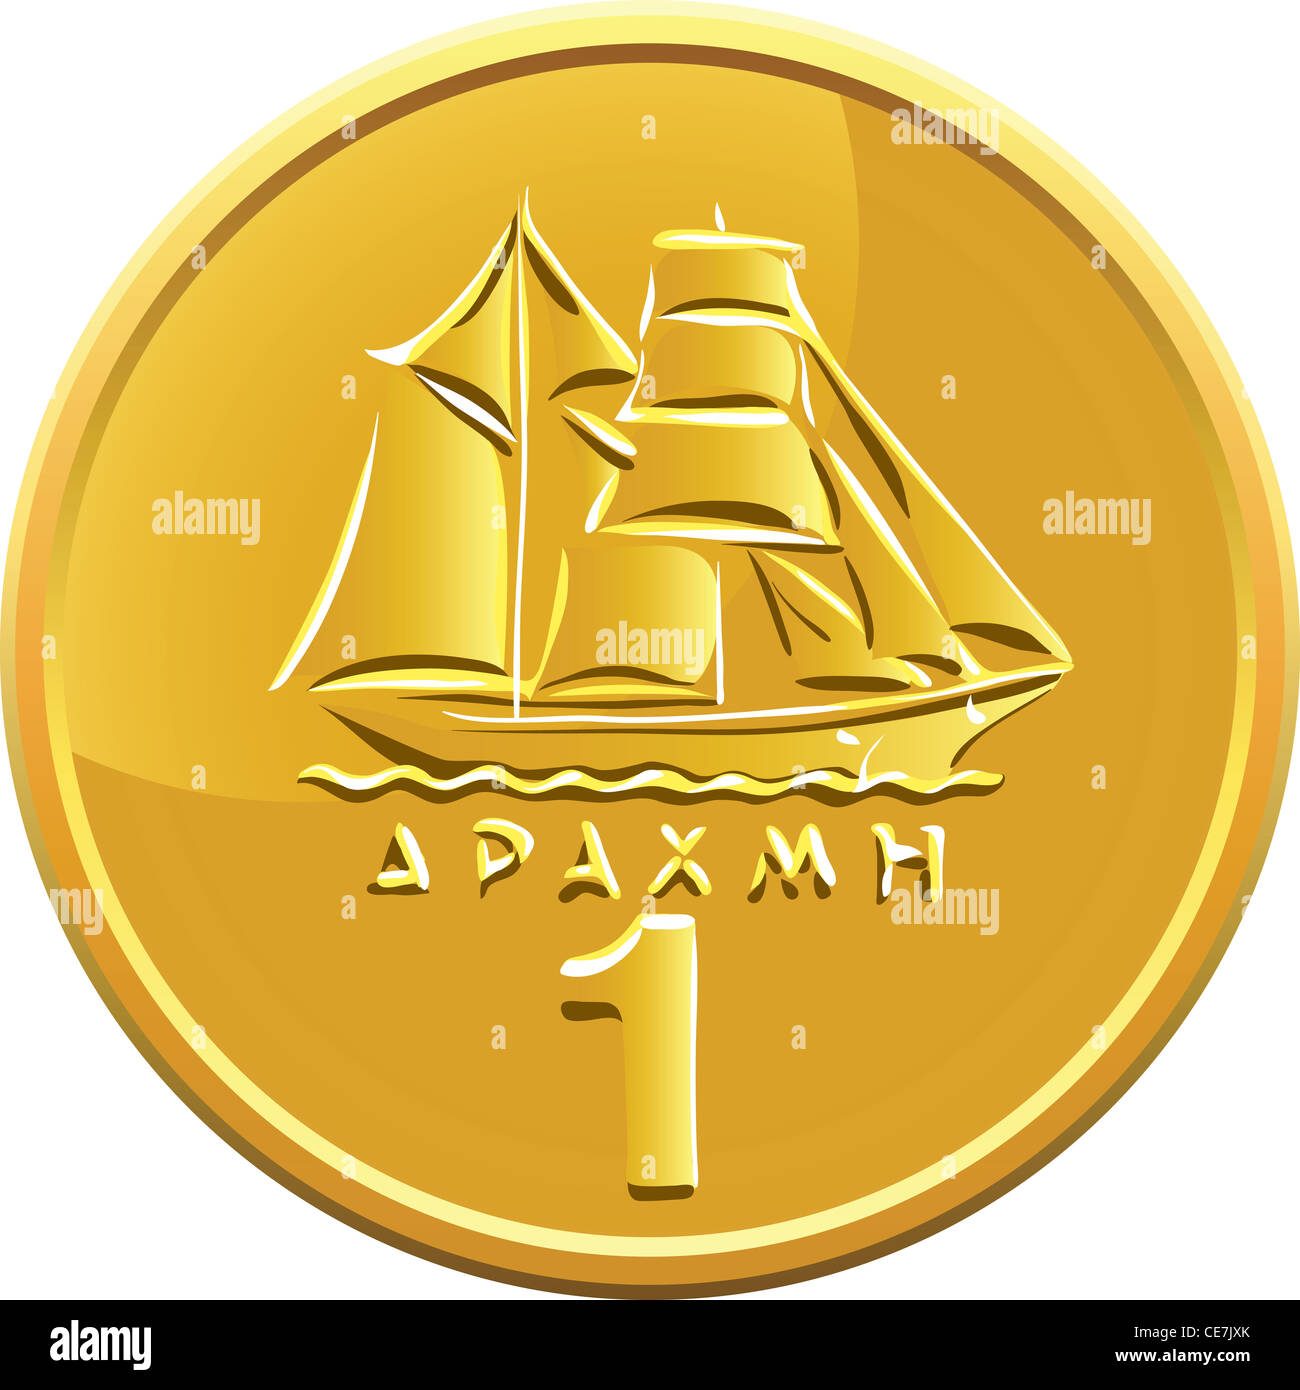 Greek drachma money gold coin with the image of the ship - Stock Image